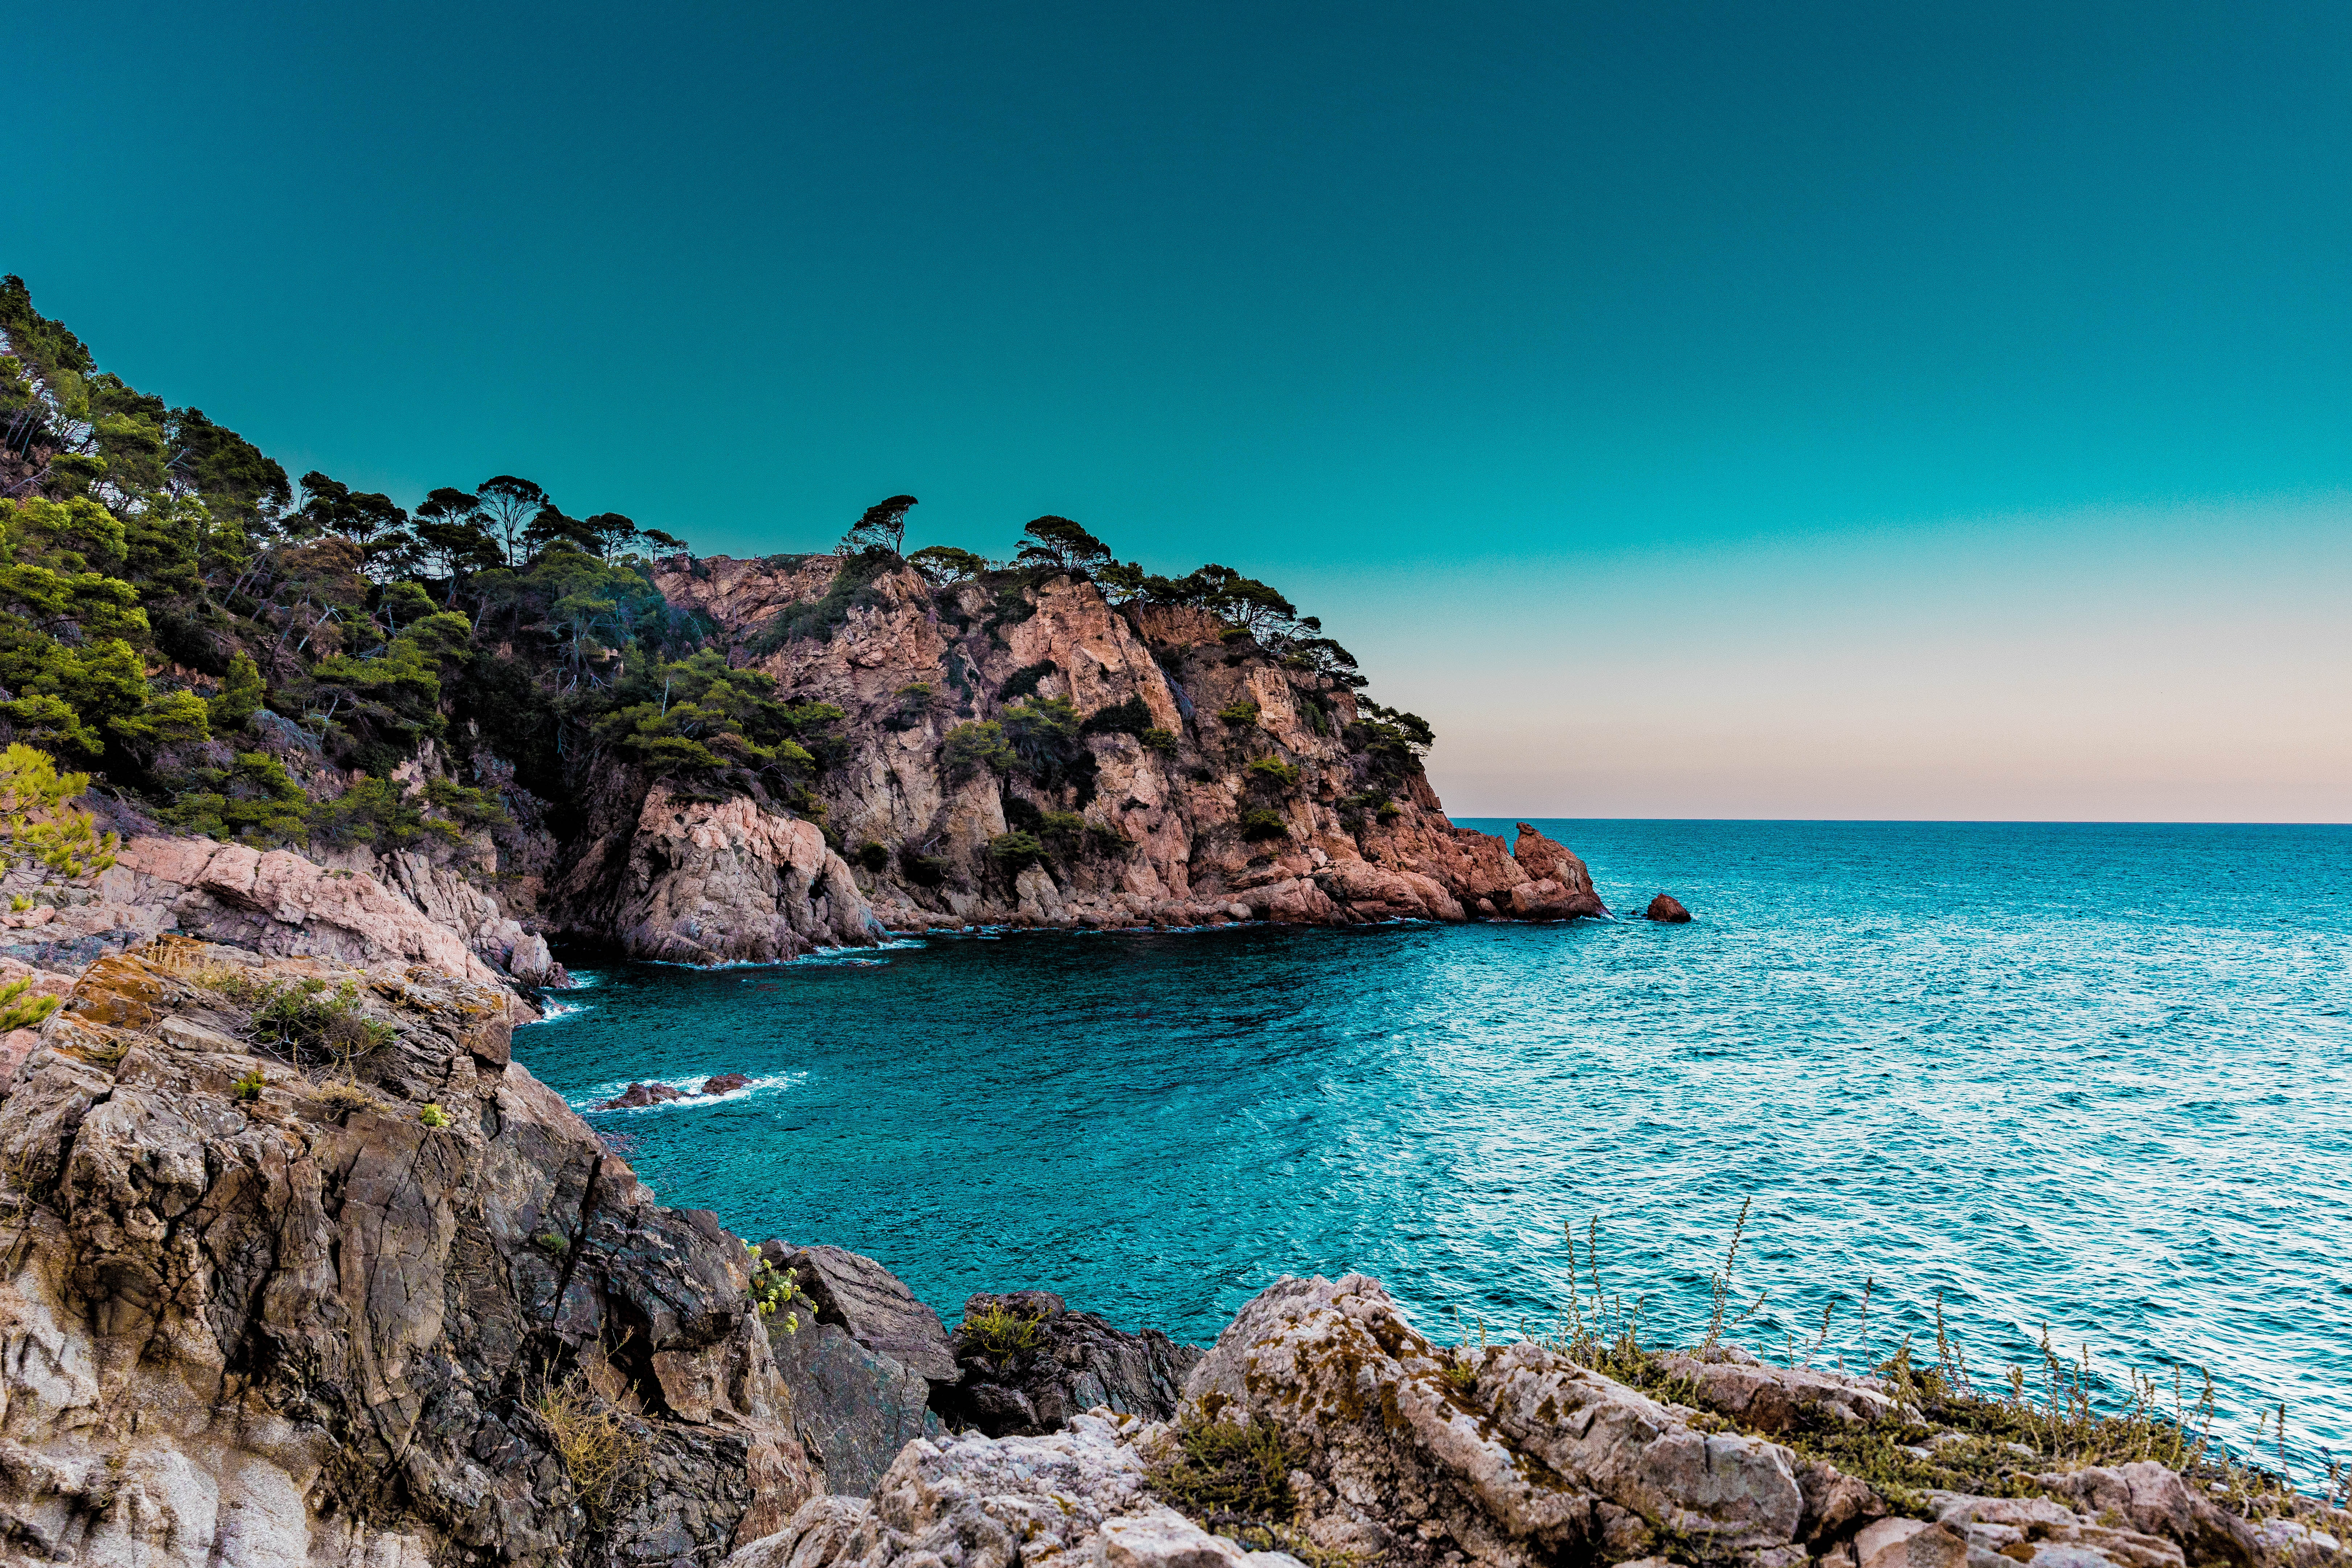 94023 download wallpaper Sea, Nature, Rocks, Shore, Bank screensavers and pictures for free